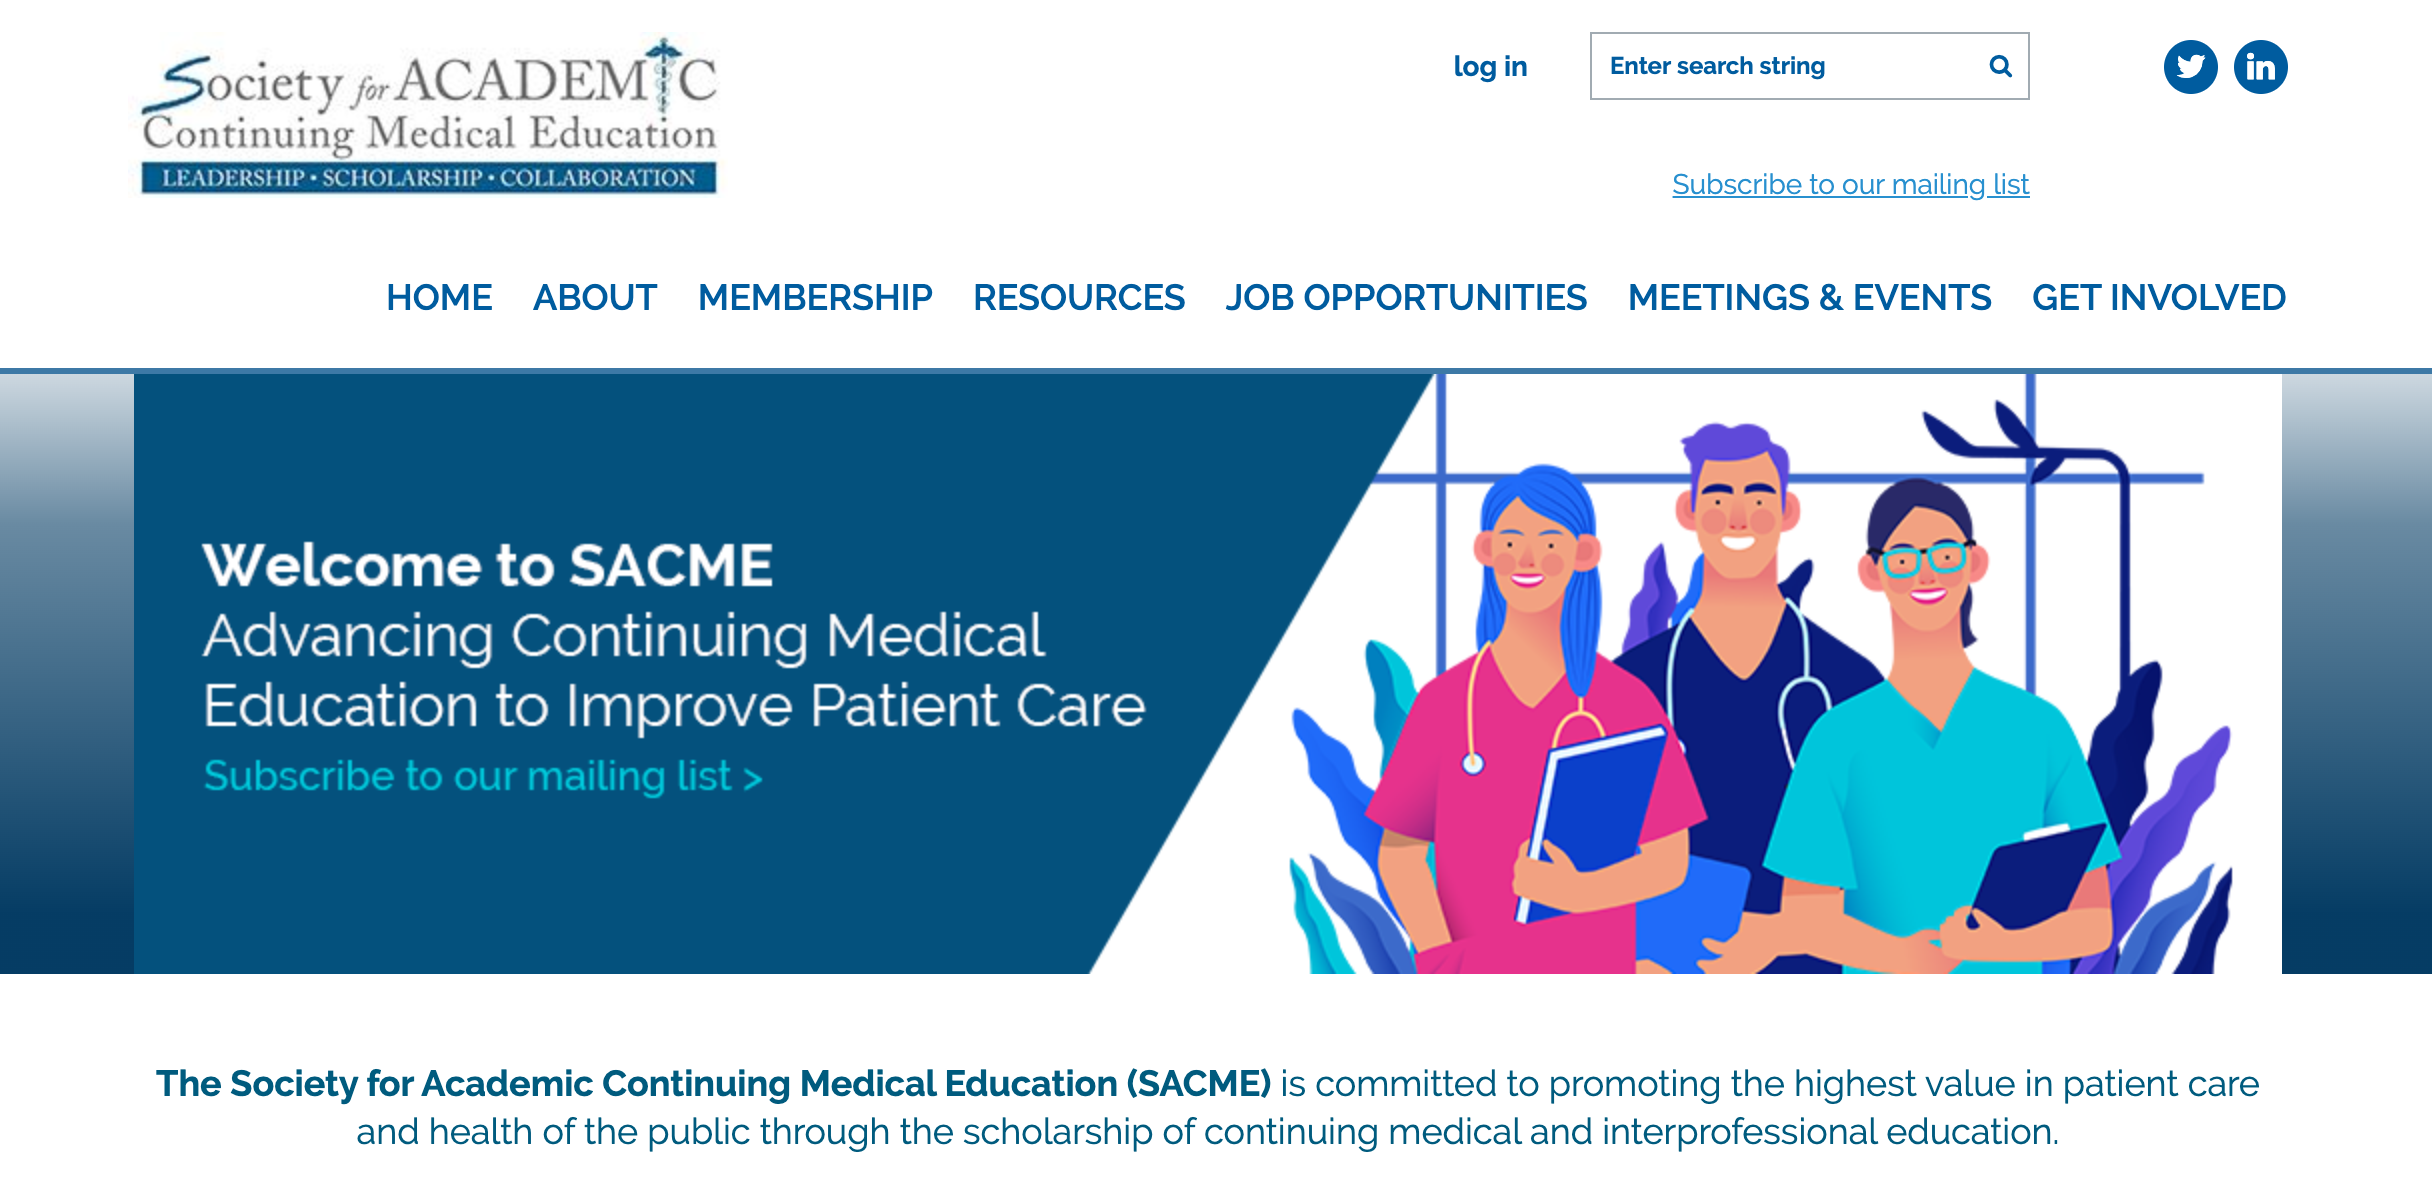 Society for Academic Continuing Medical Education website